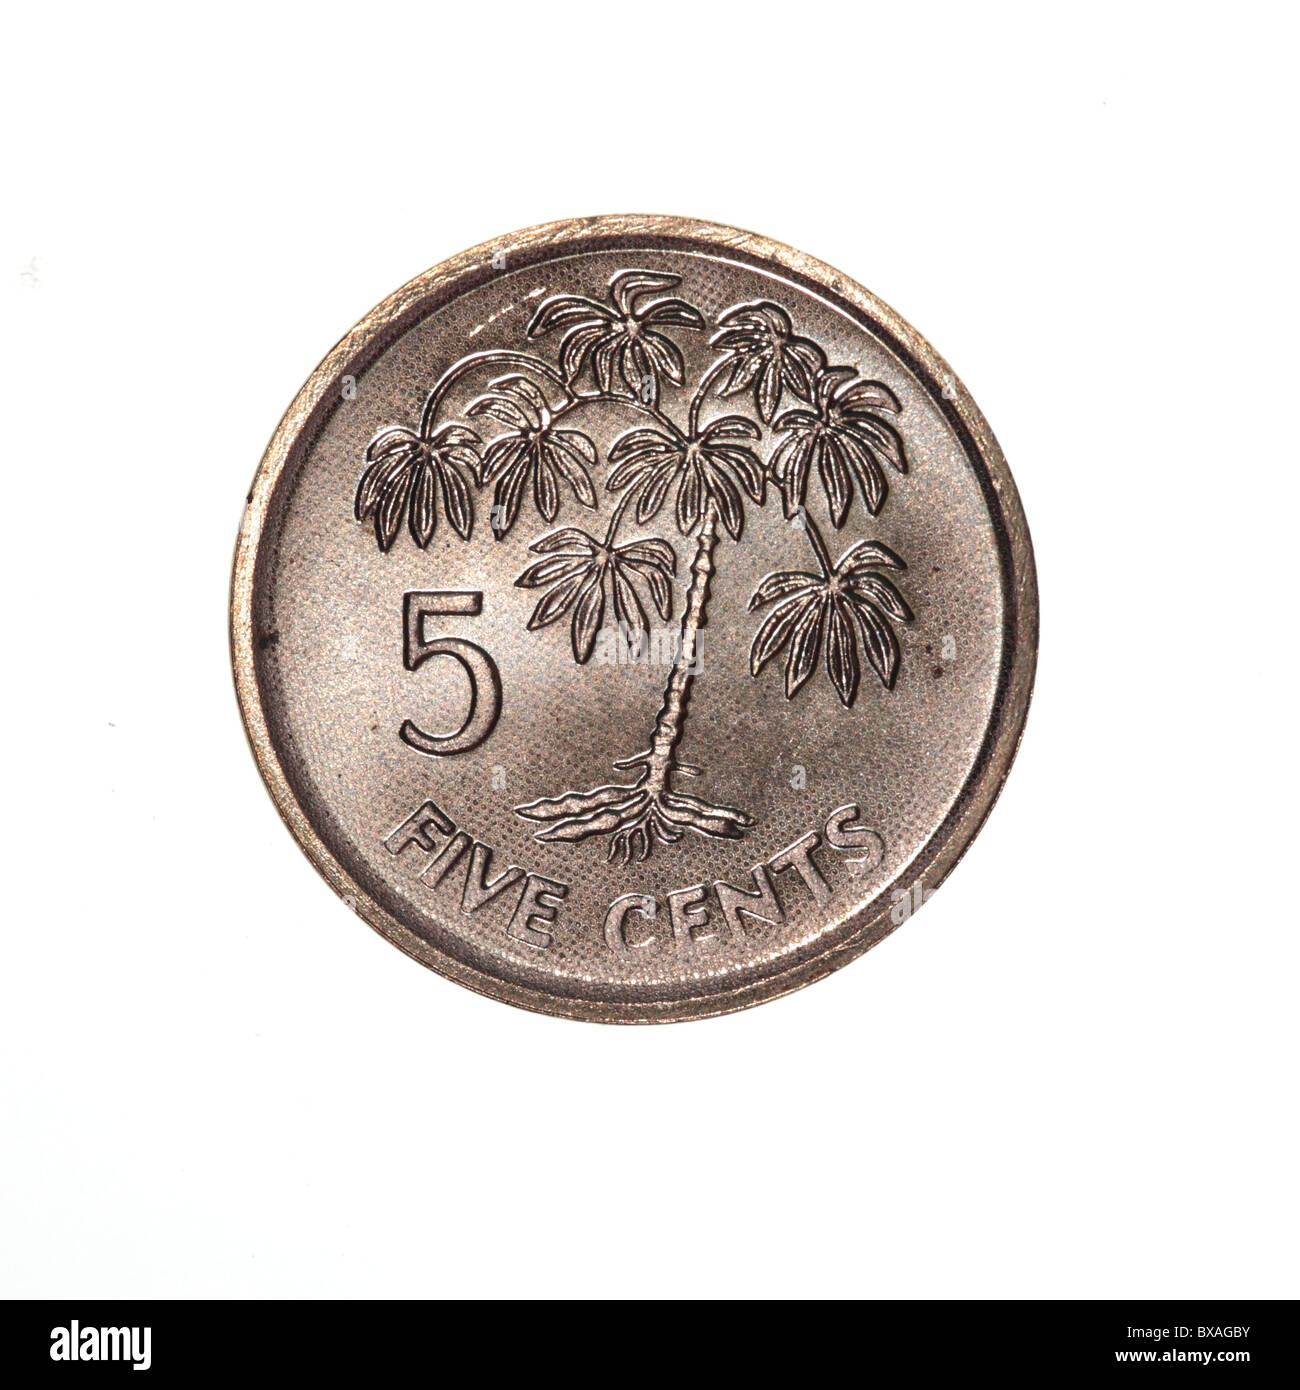 Seychelles coin - Stock Image